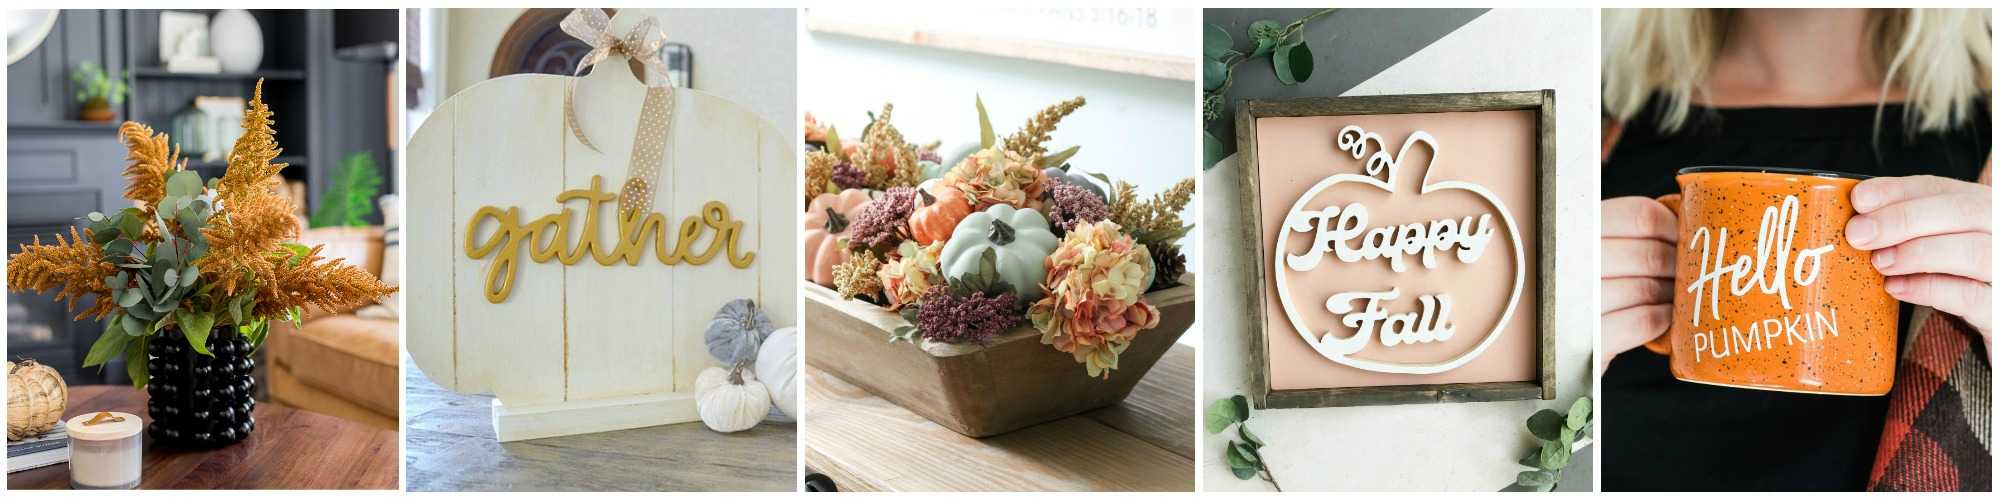 Loving these fall pumpkin ideas, such pretty fall decorations to make this season. Easy to follow fall decor ideas! #falldecor #fallroundup #diyfalldecor